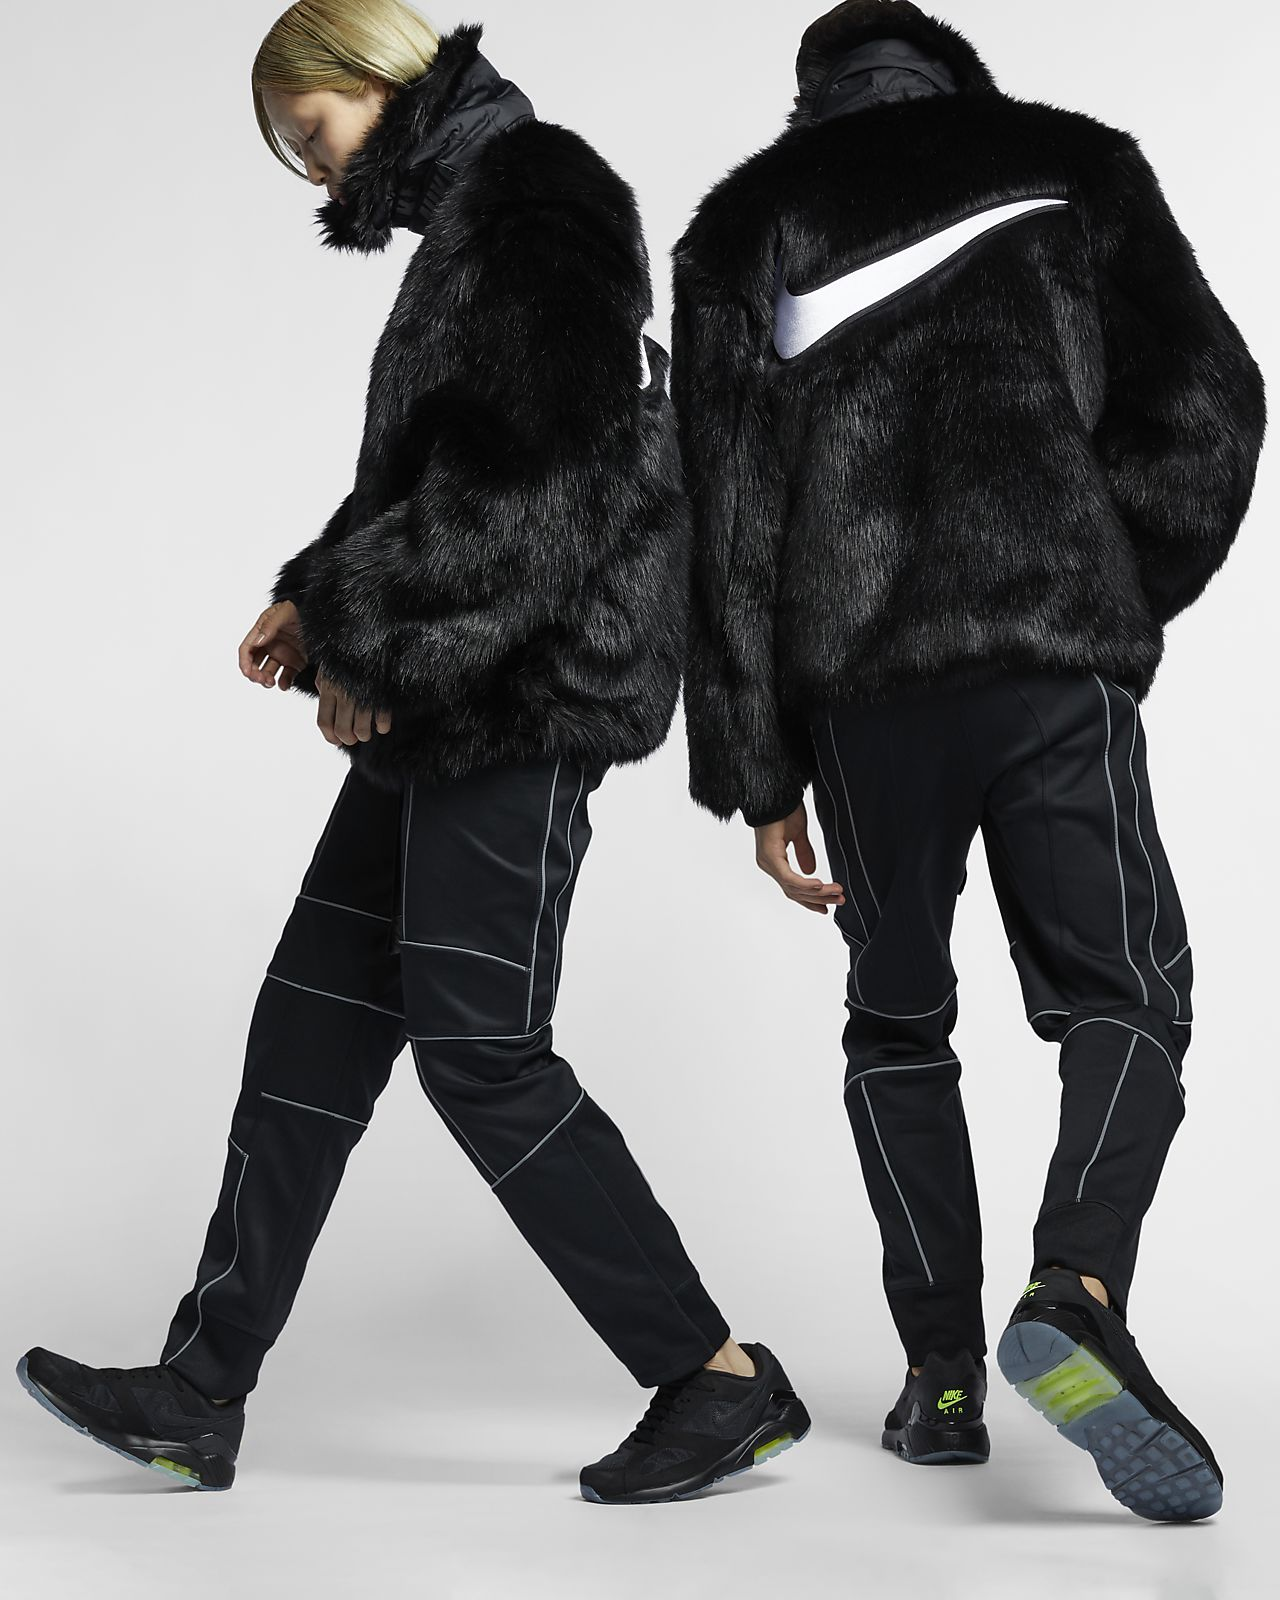 e4549a1abbc2 Nike x Ambush Women's Reversible Faux-Fur Coat. Nike.com PH